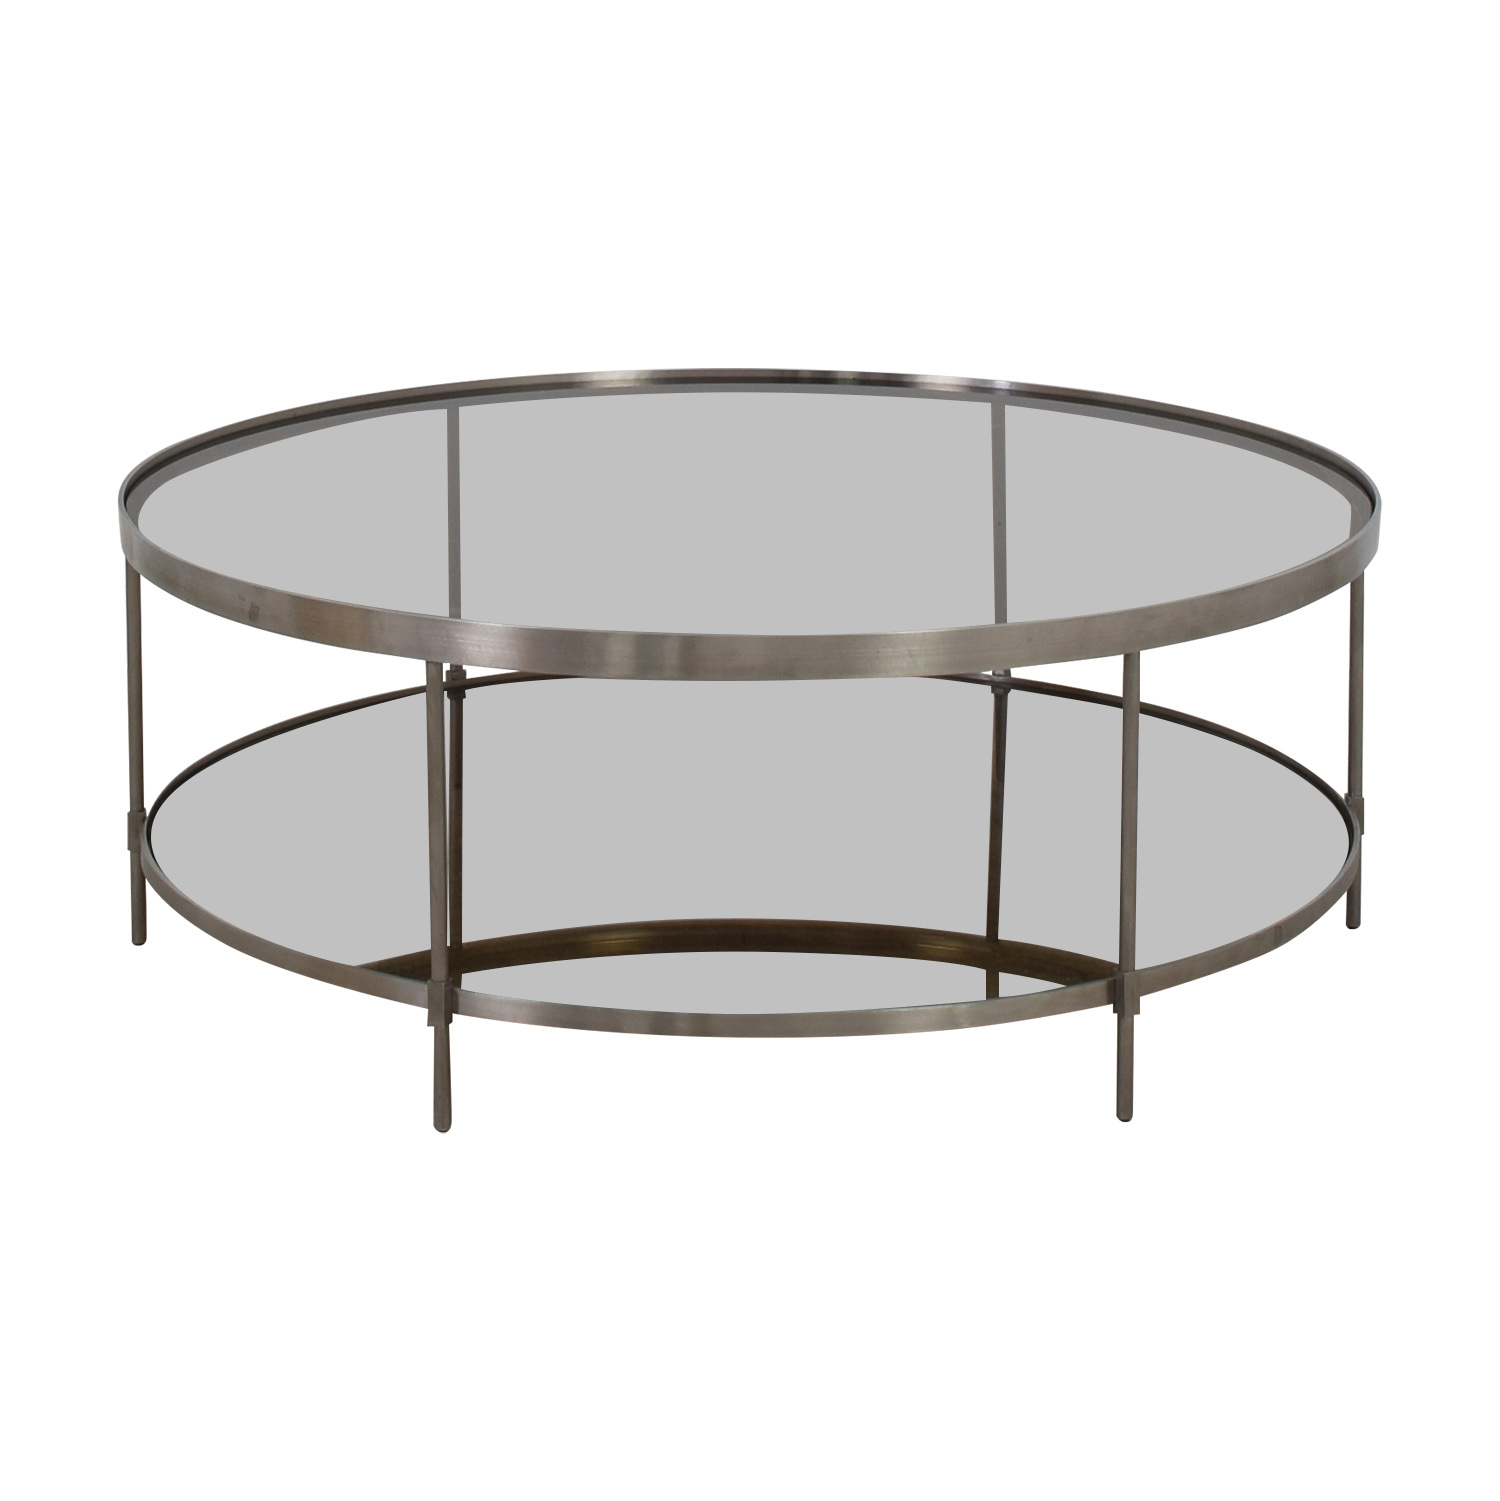 Round Glass and Metal Coffee Table price